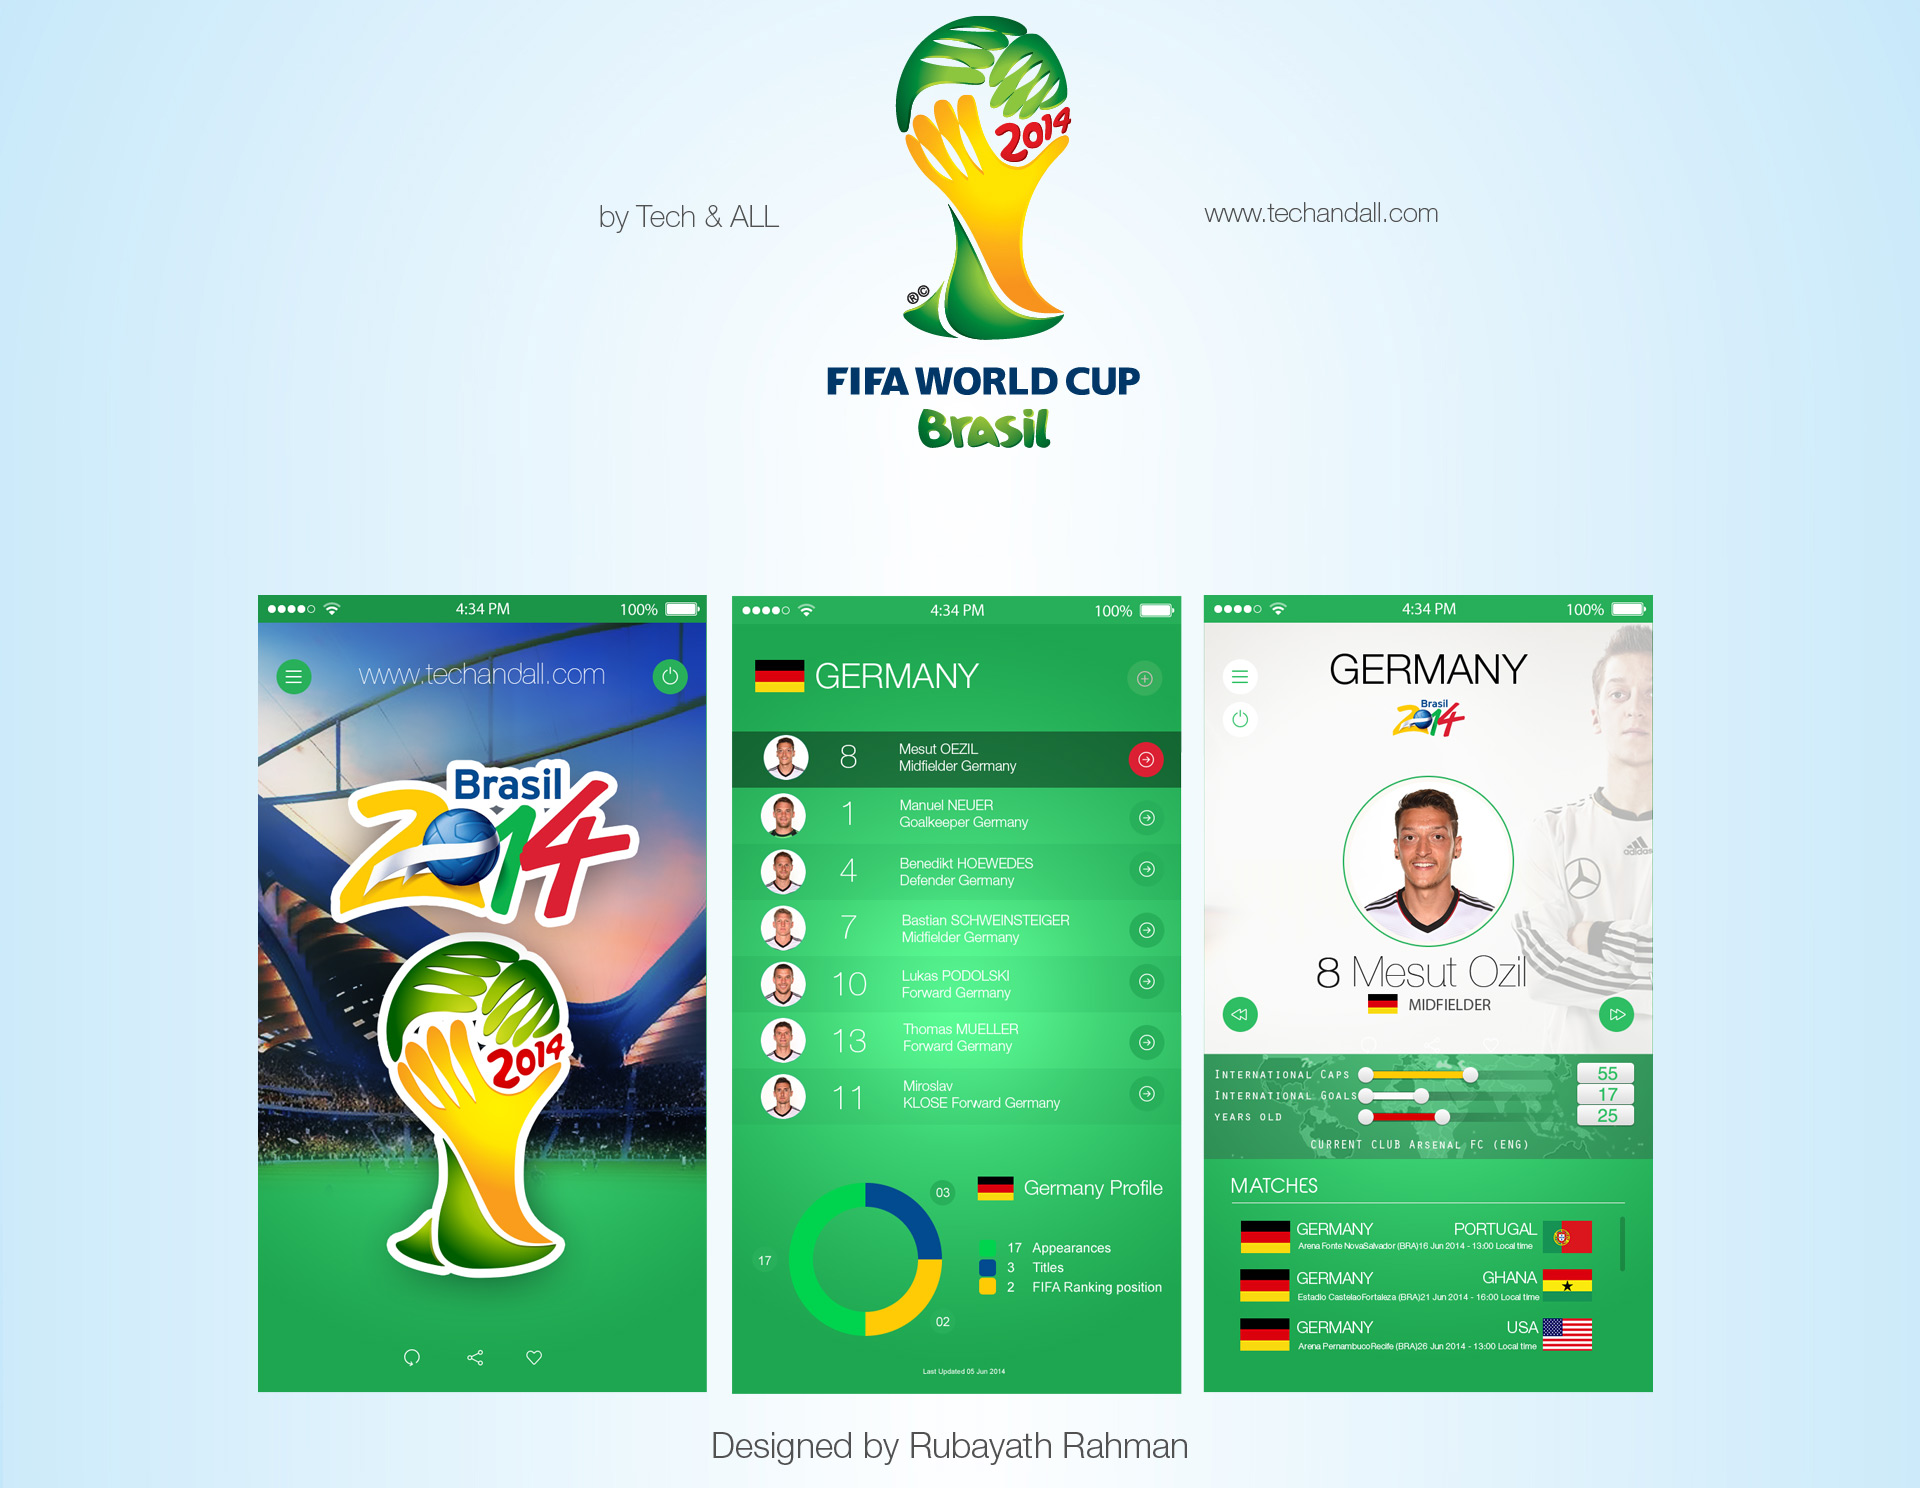 techandall_wordcup2014_app_L4